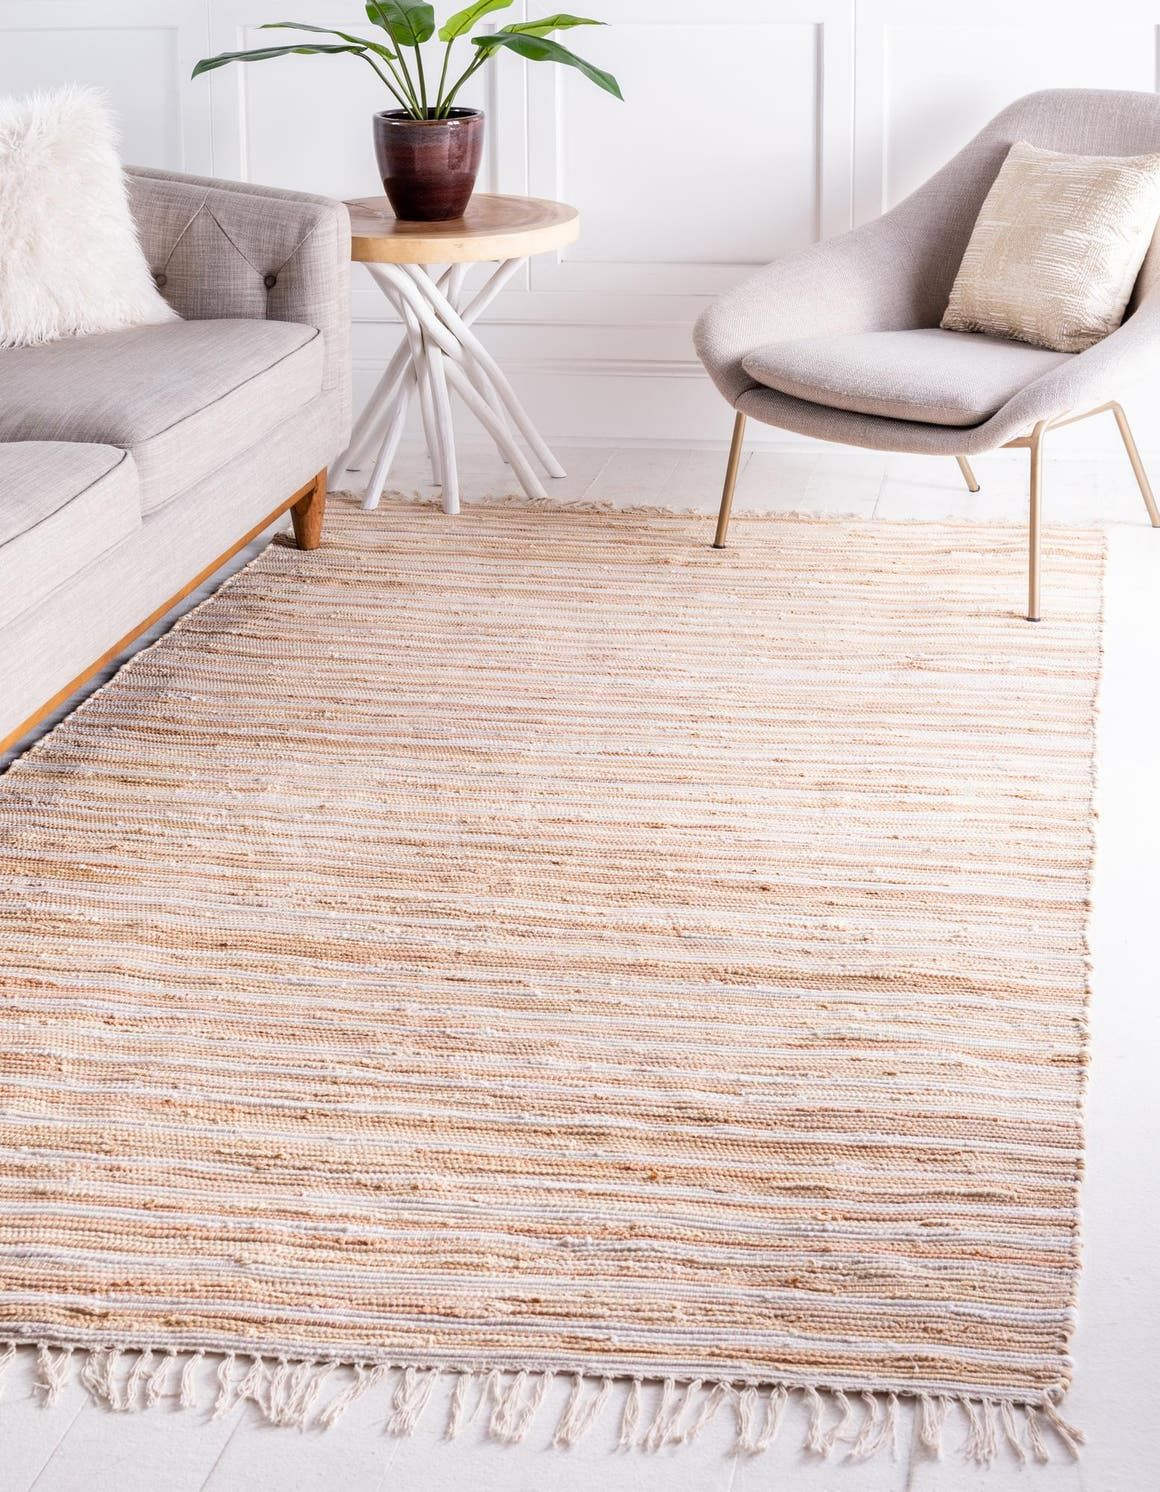 Beige 8 X 10 Chindi Cotton Rug Rugs Com Rugs In Living Room Beige Area Rugs Area Rugs Beige rug living room